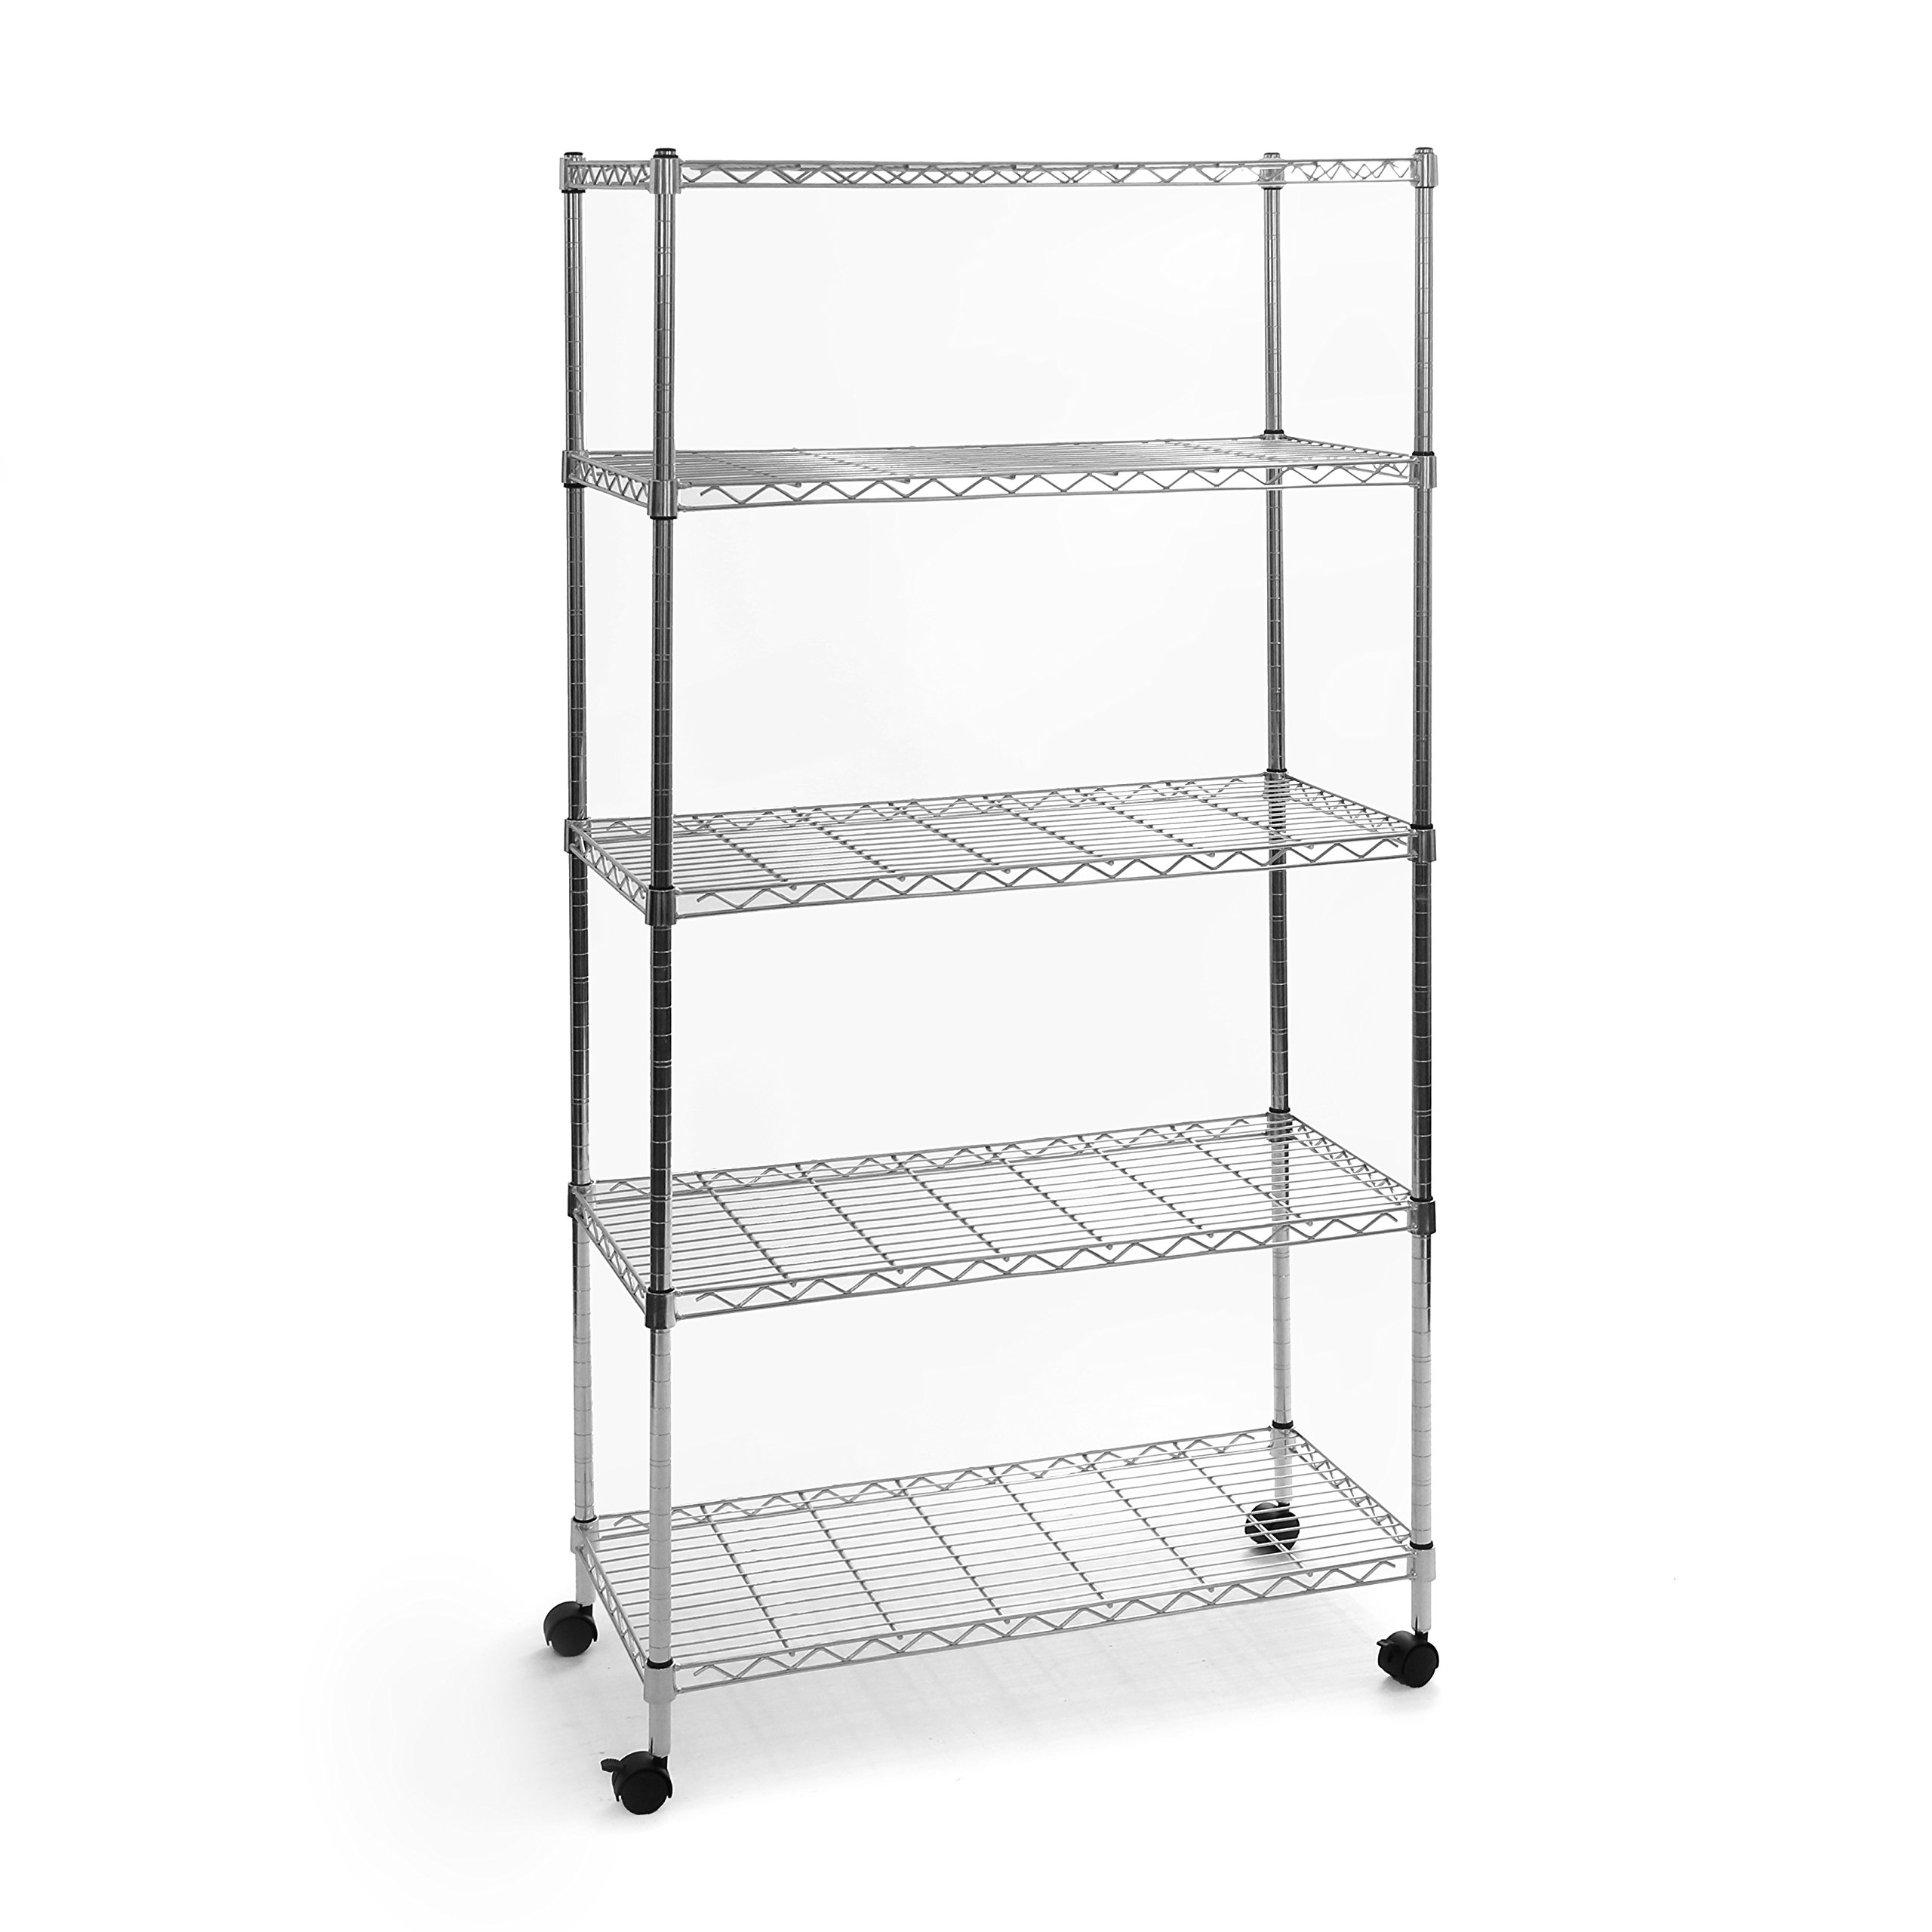 Seville Classics 5-Tier UltraZinc Steel Wire Shelving/w Wheels, 14'' D x 30'' W x 60'' H